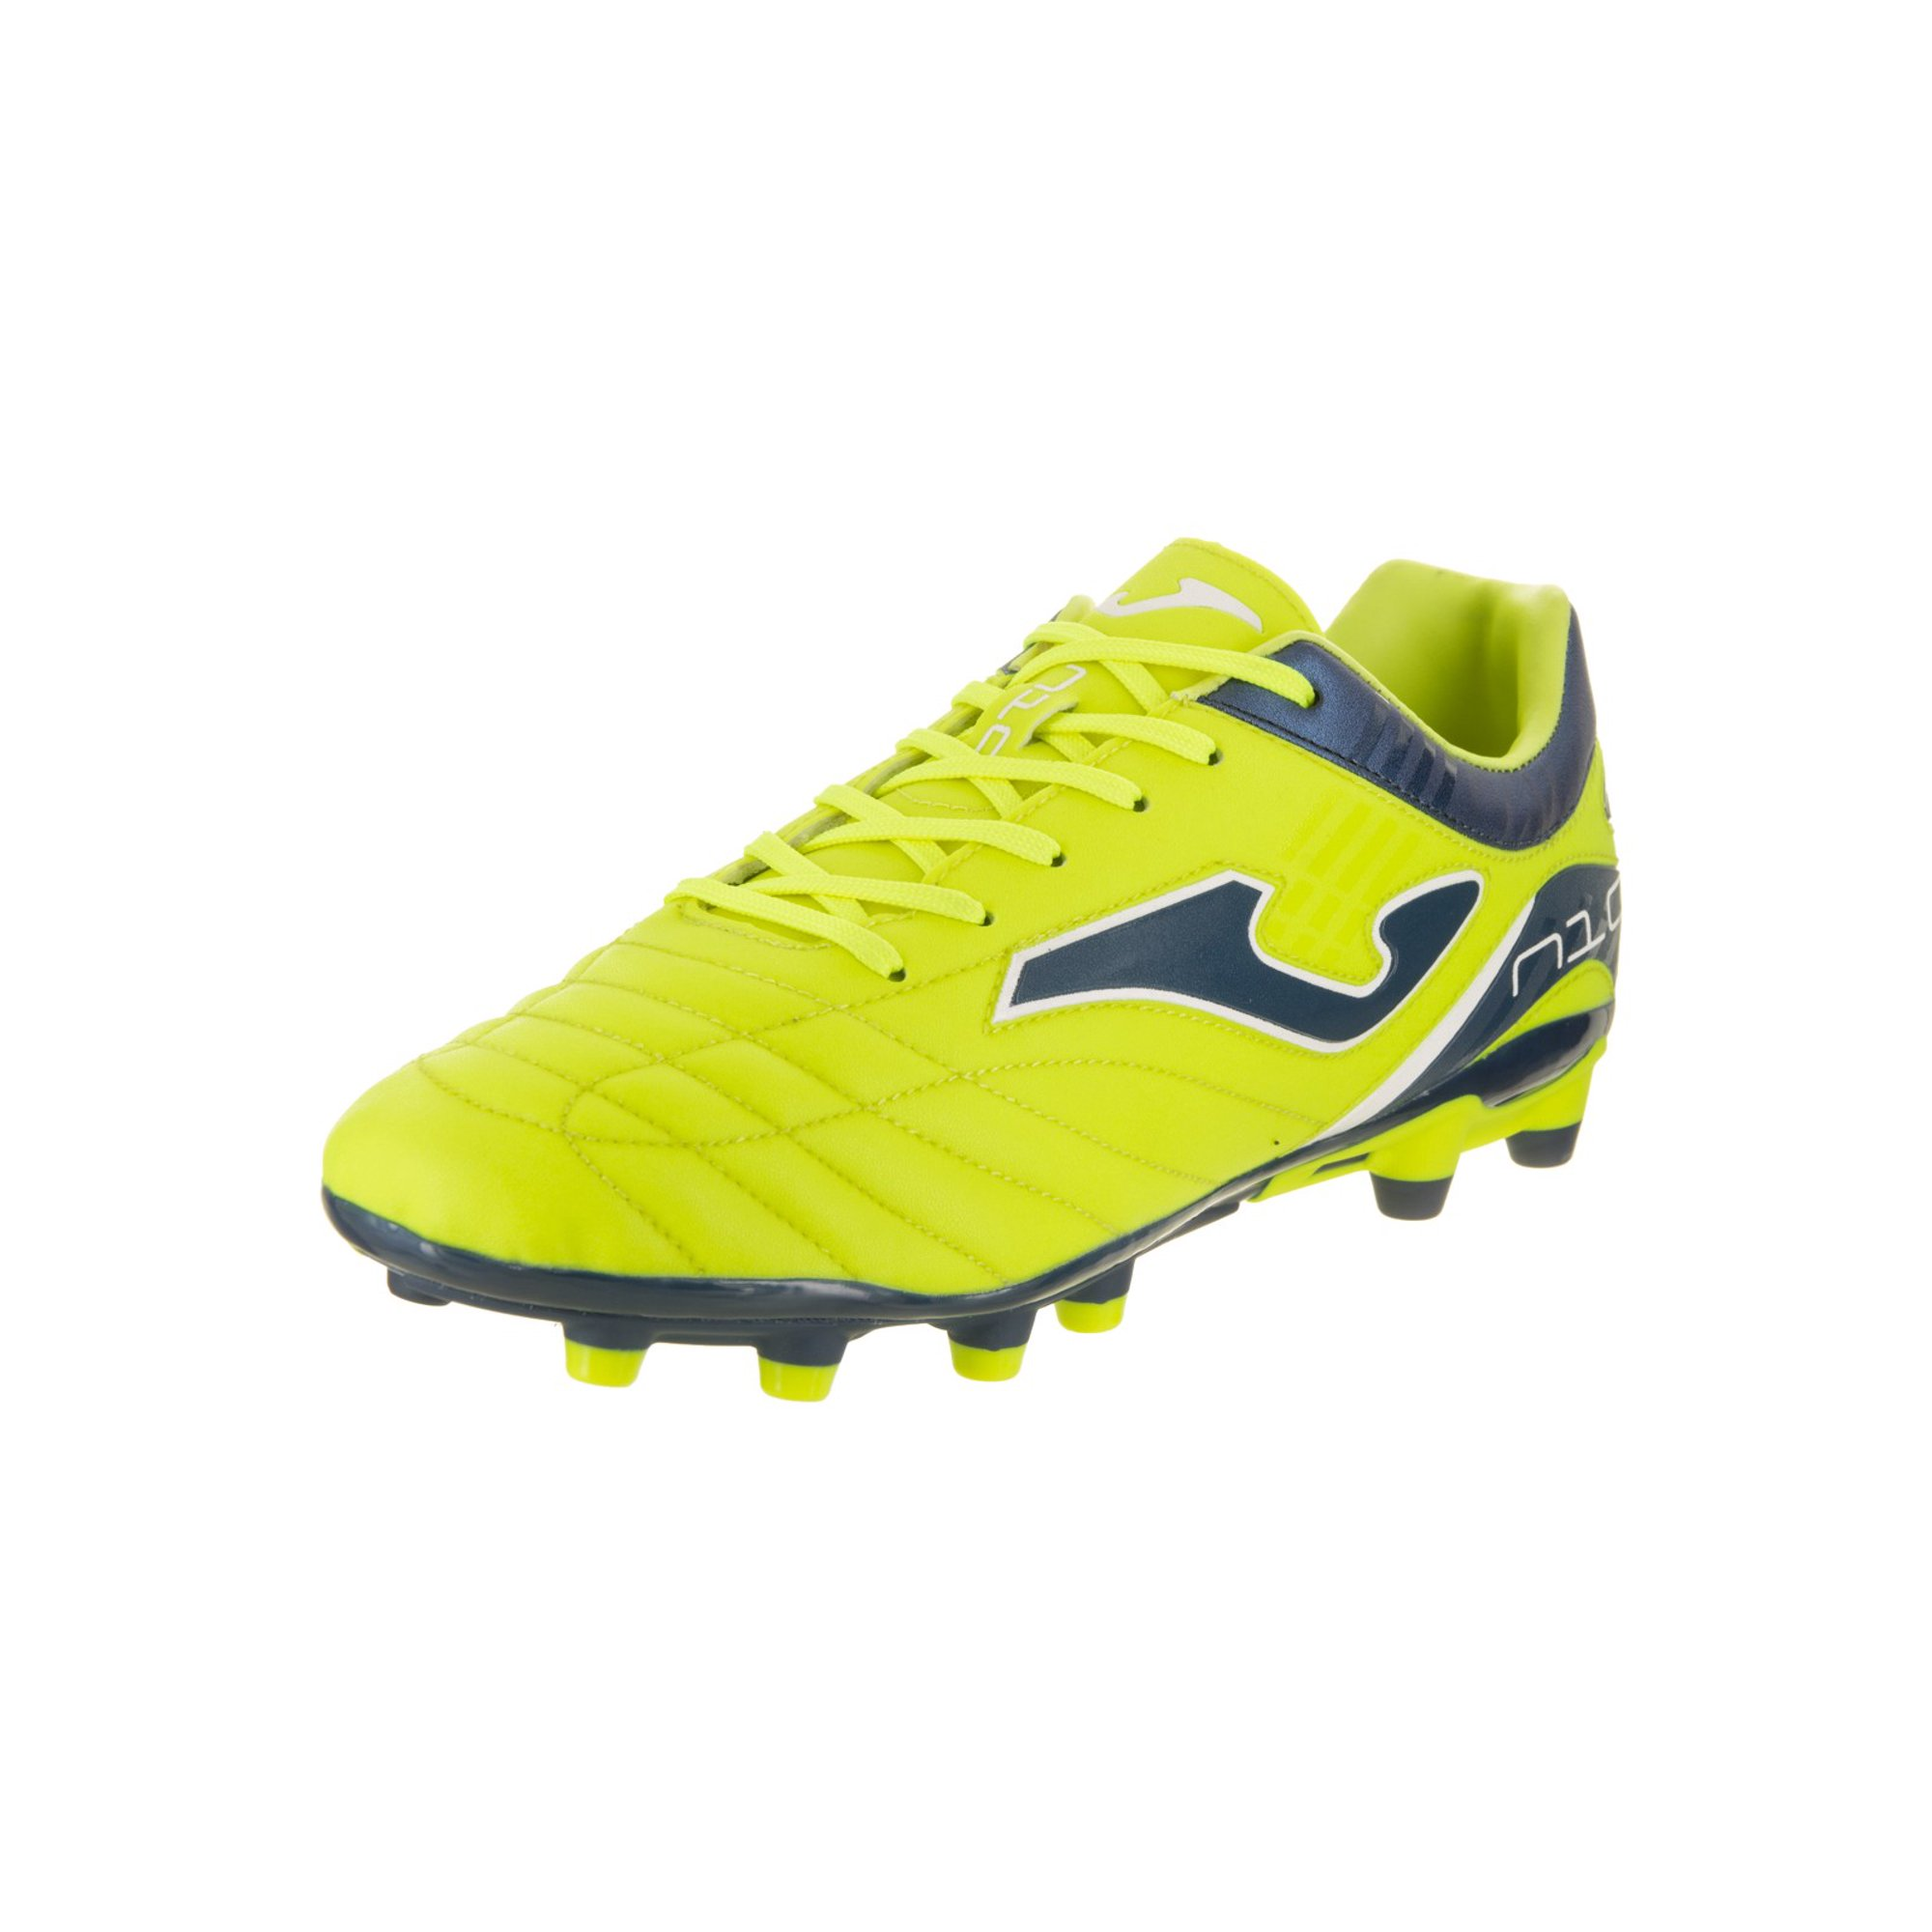 Firm CleatWalmart Joma Soccer 10 Men's Canada Ground 611 Numero 4AqL35jR